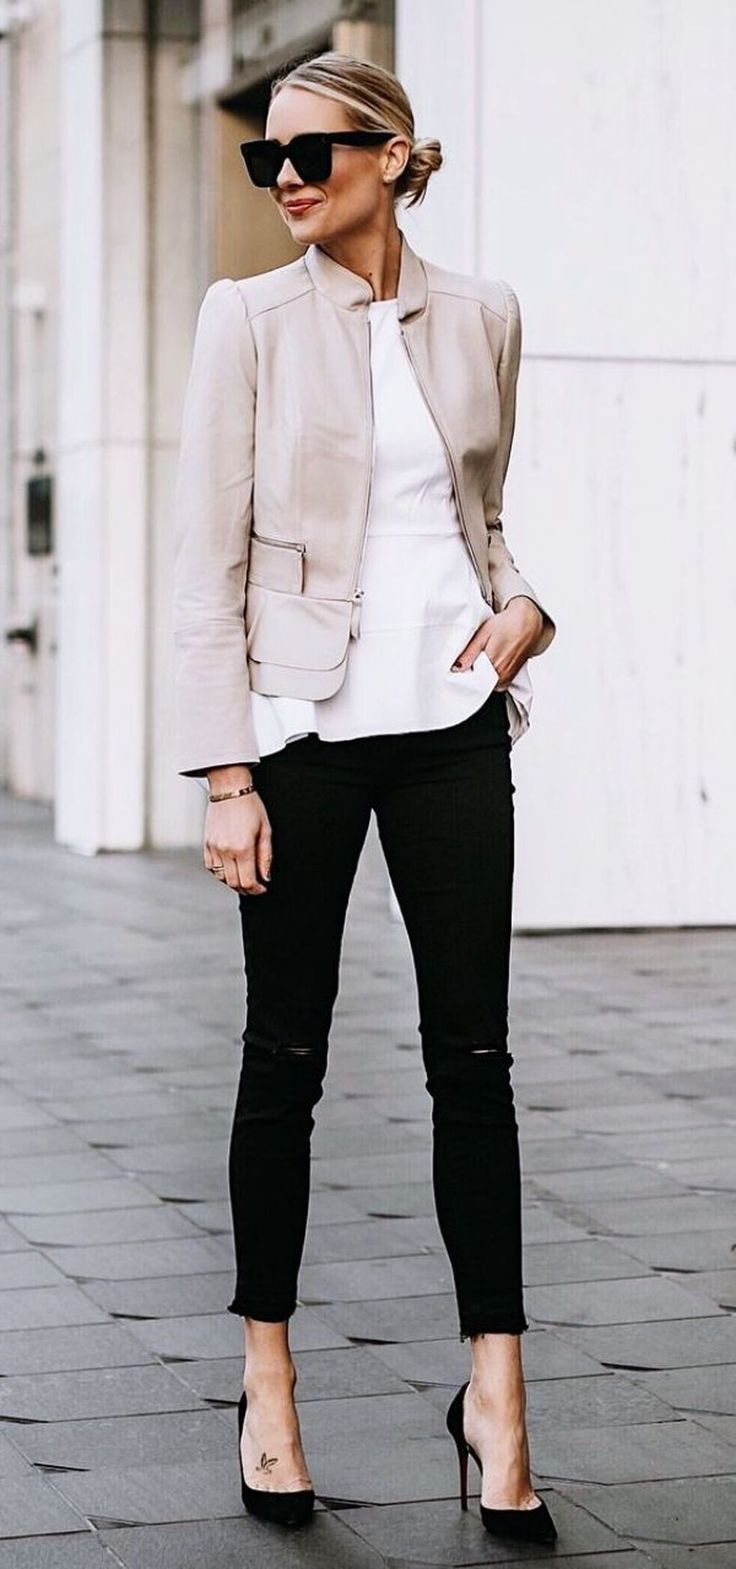 da8a67c641 36 Perfect Work Office Outfit Ideas